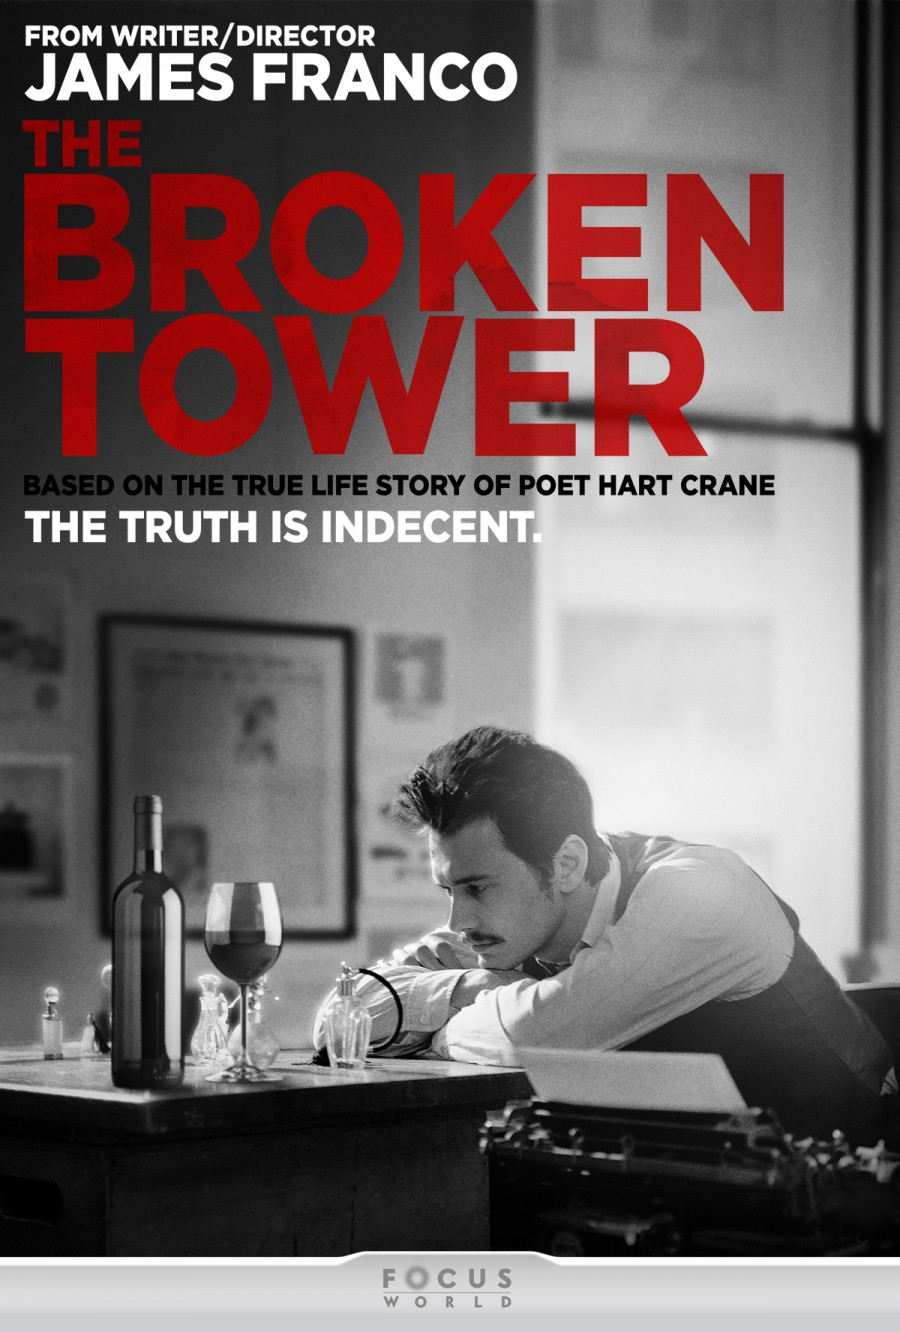 Trailer, Poster And Synopsis For James Franco's The Broken Tower